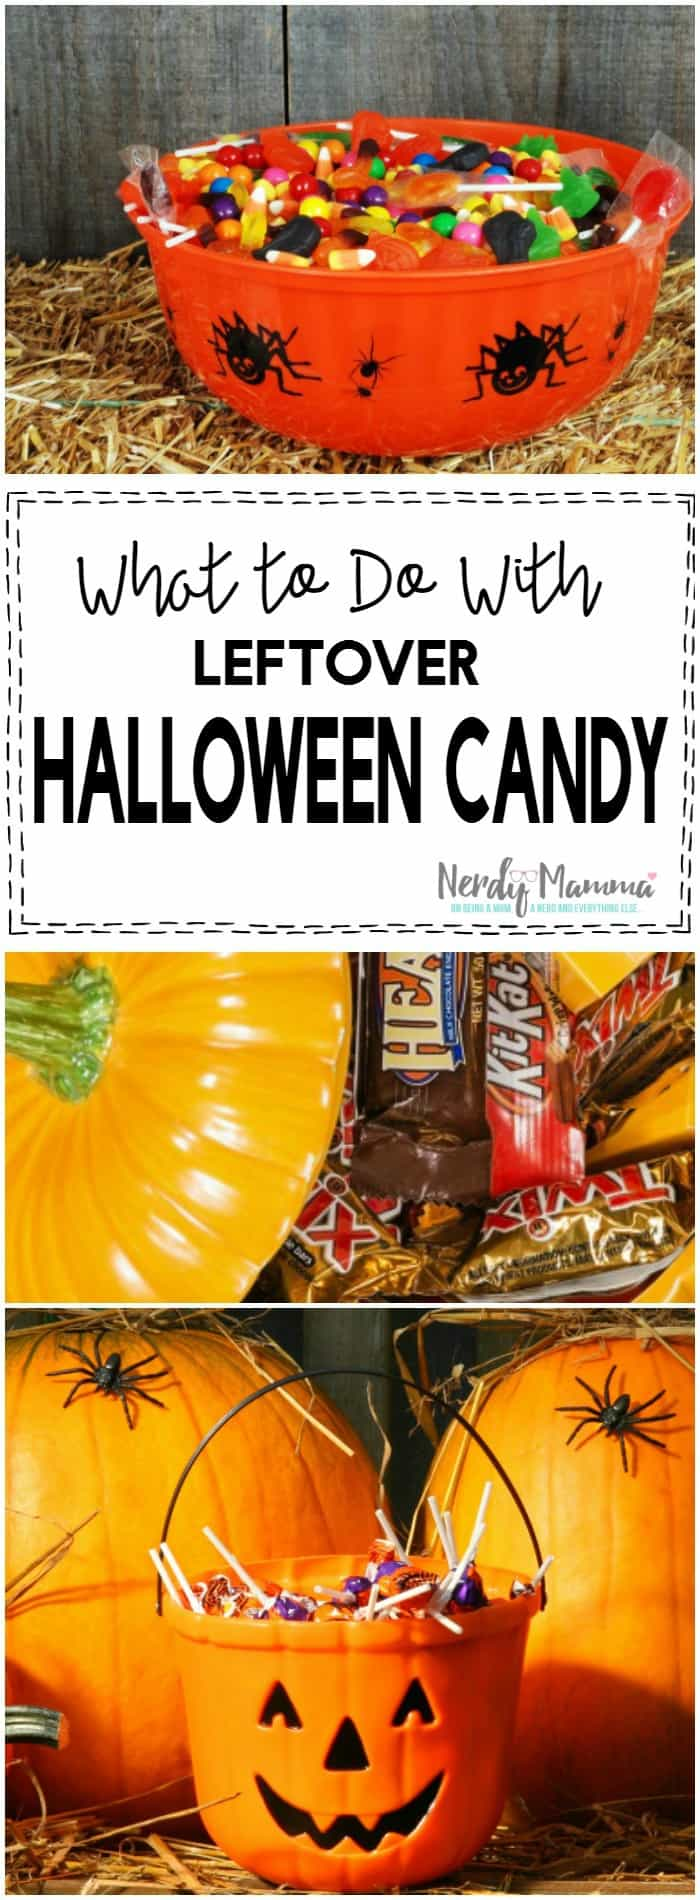 OMG, I always have so much leftover candy and I don't want to eat it all myself. These are GREAT options.